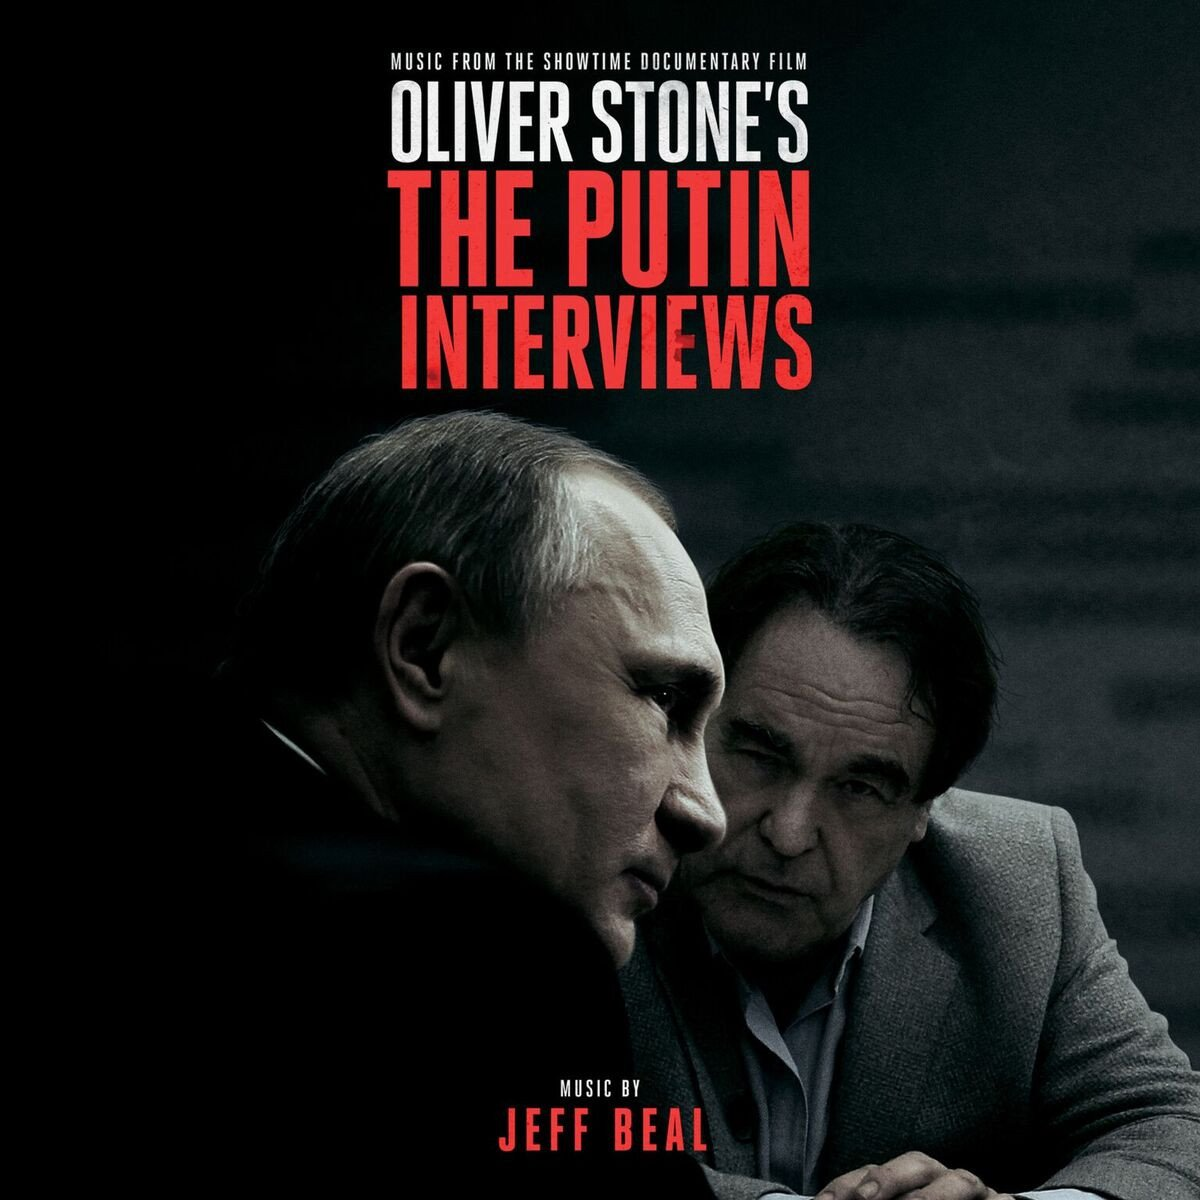 The Putin Interviews (Digital Only)